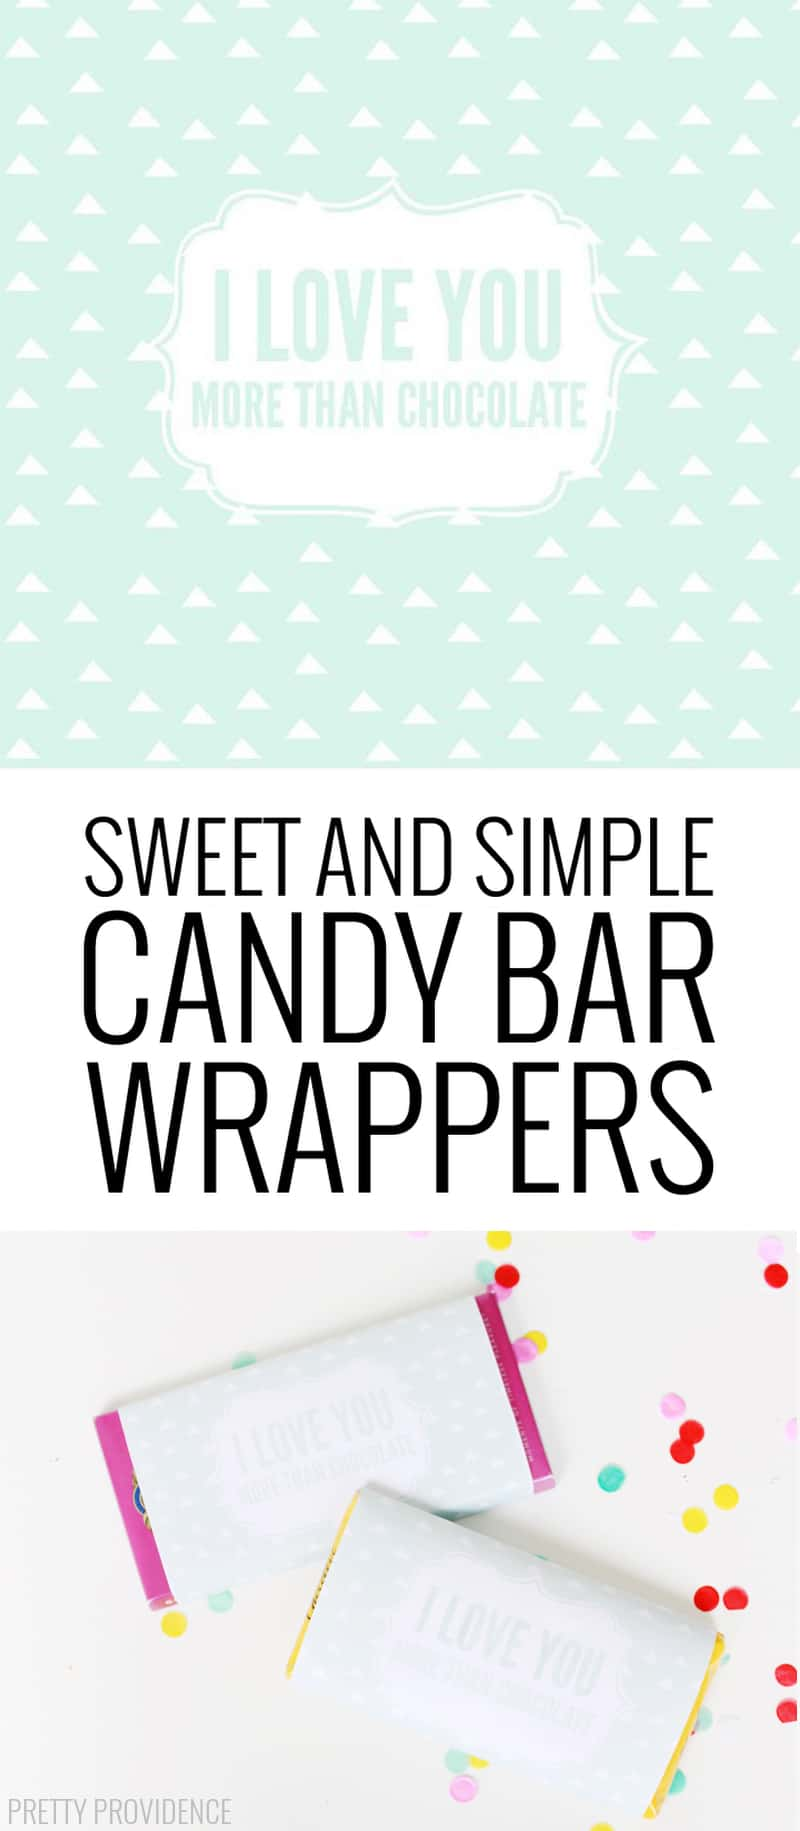 Cute printable candy bar wrappers! Perfect for Mother's Day!